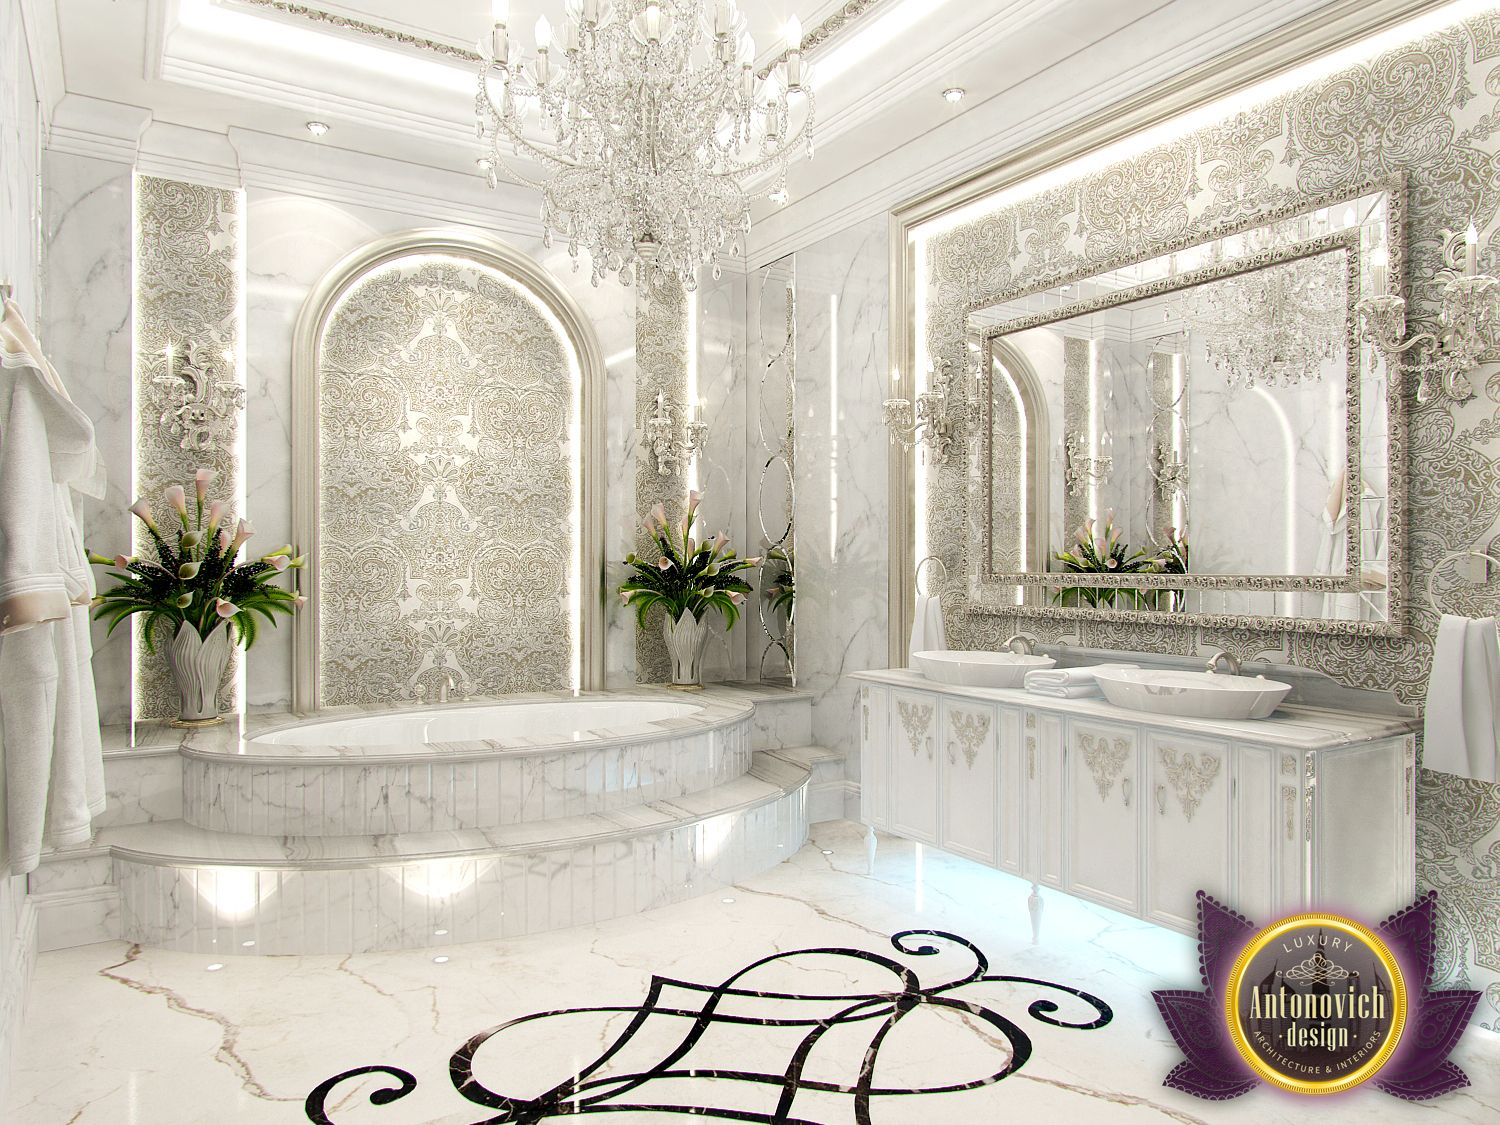 Luxury antonovich design uae interior bathroom from for Bathroom interior design 2016